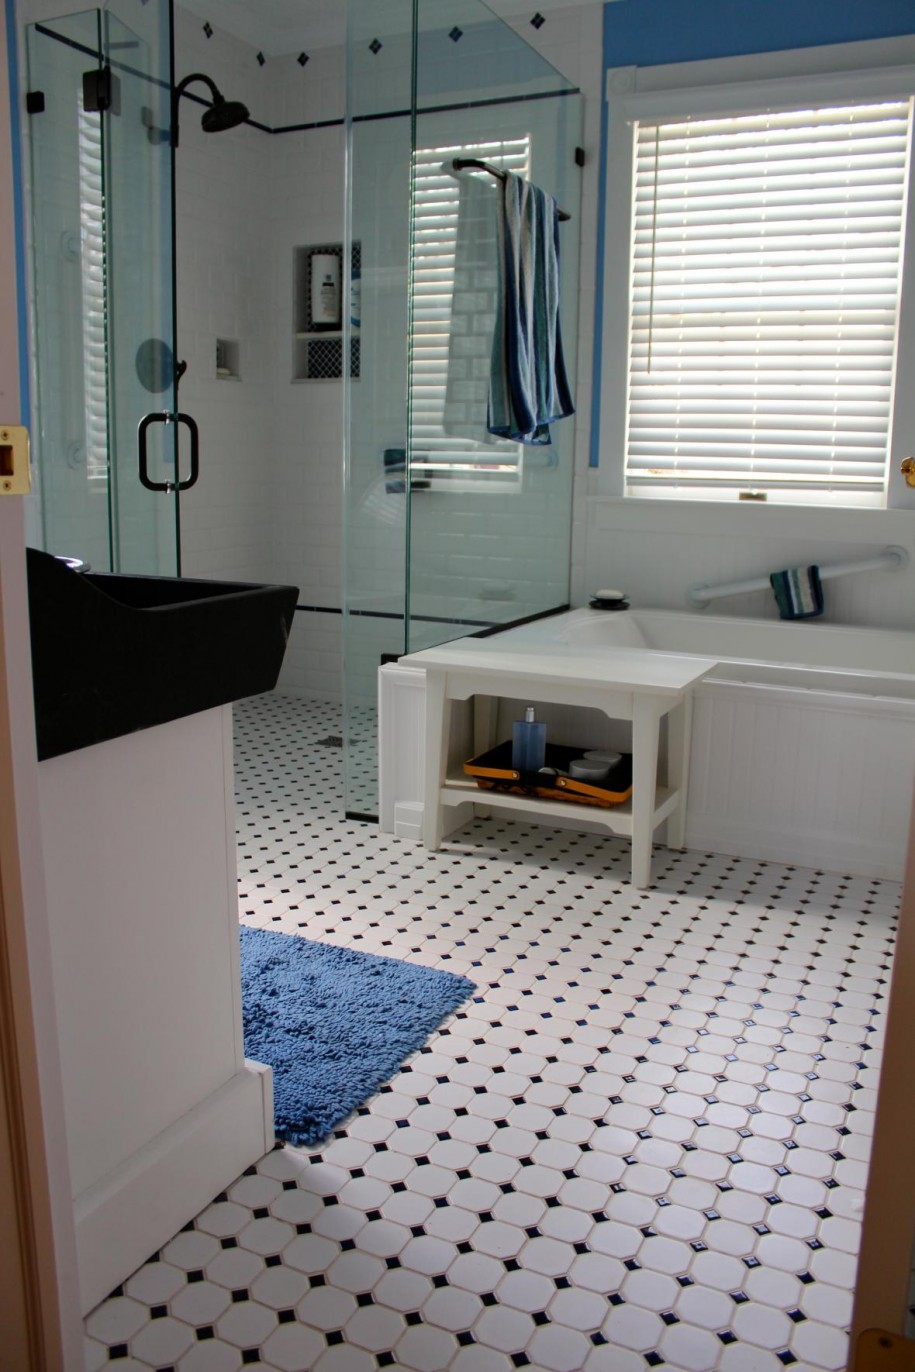 Decorating Design Ideas With Black And White Tile Bathroom Floor